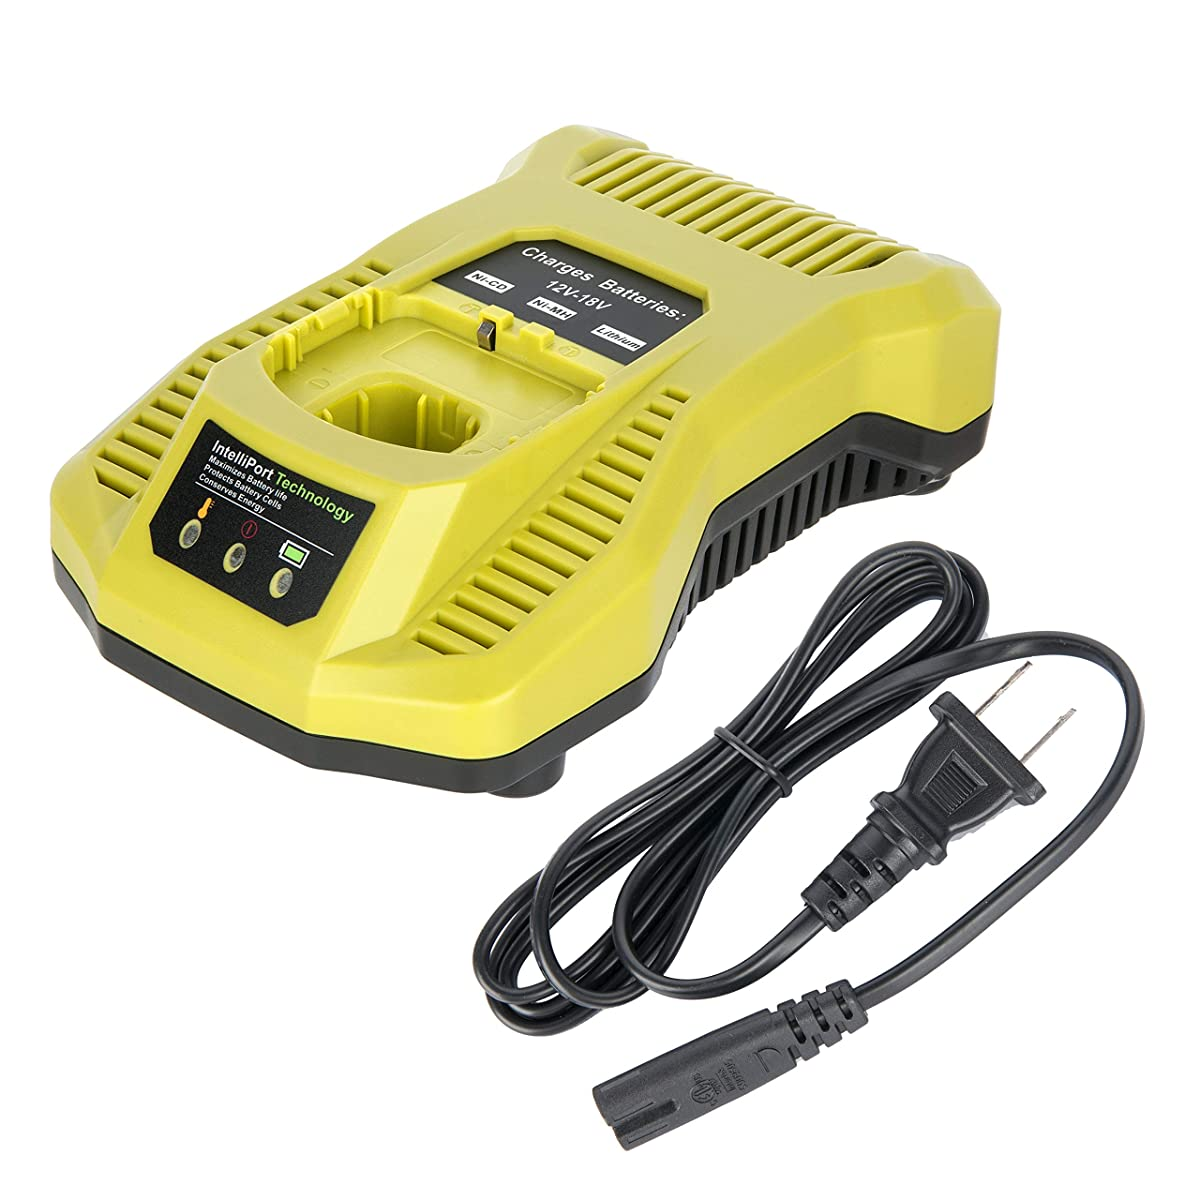 Cell 9102 Ryobi Battery Charger